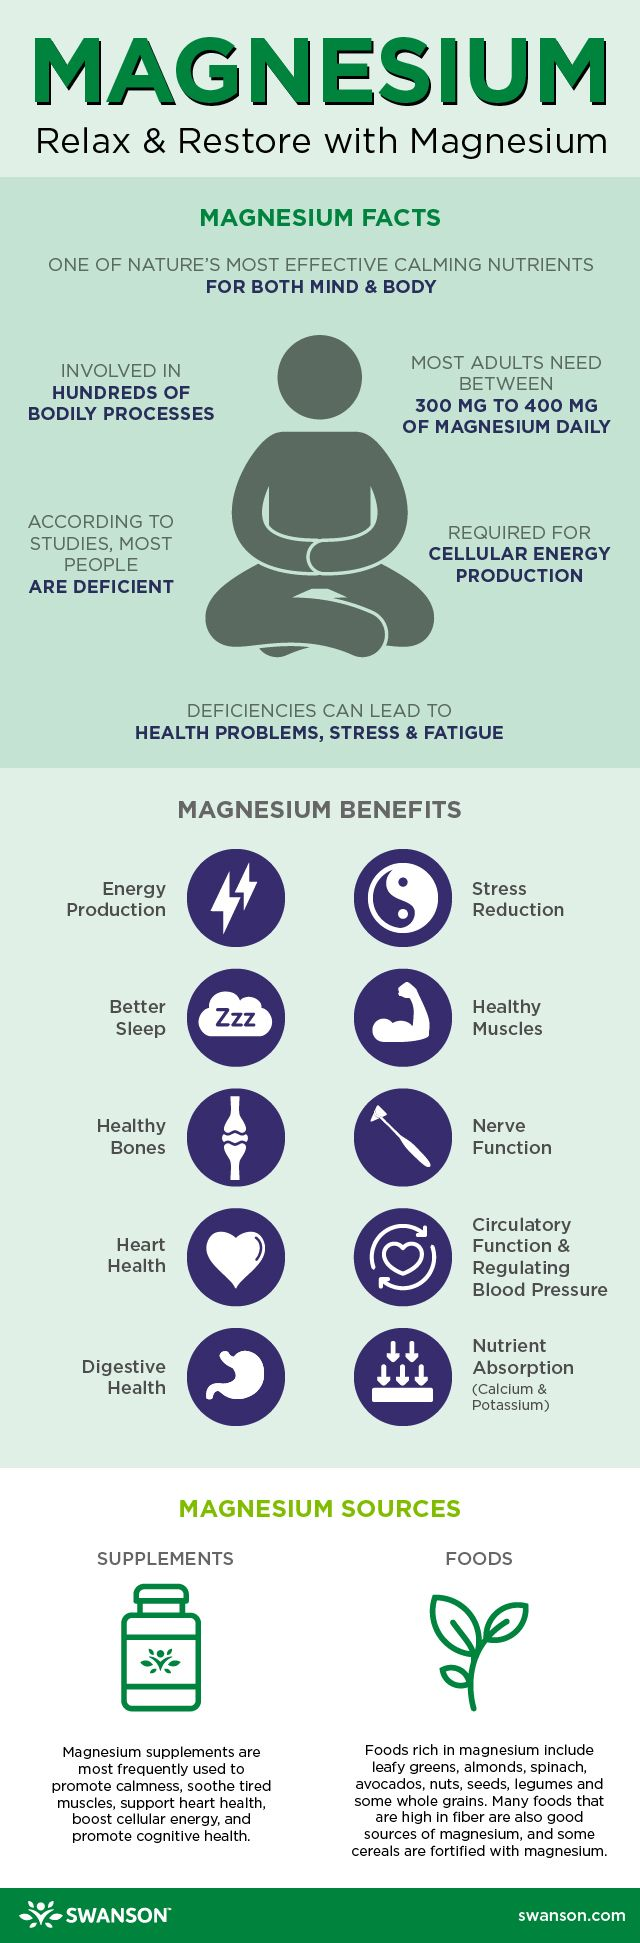 Magnesium Benefits & Uses Infographic by Swanson Health